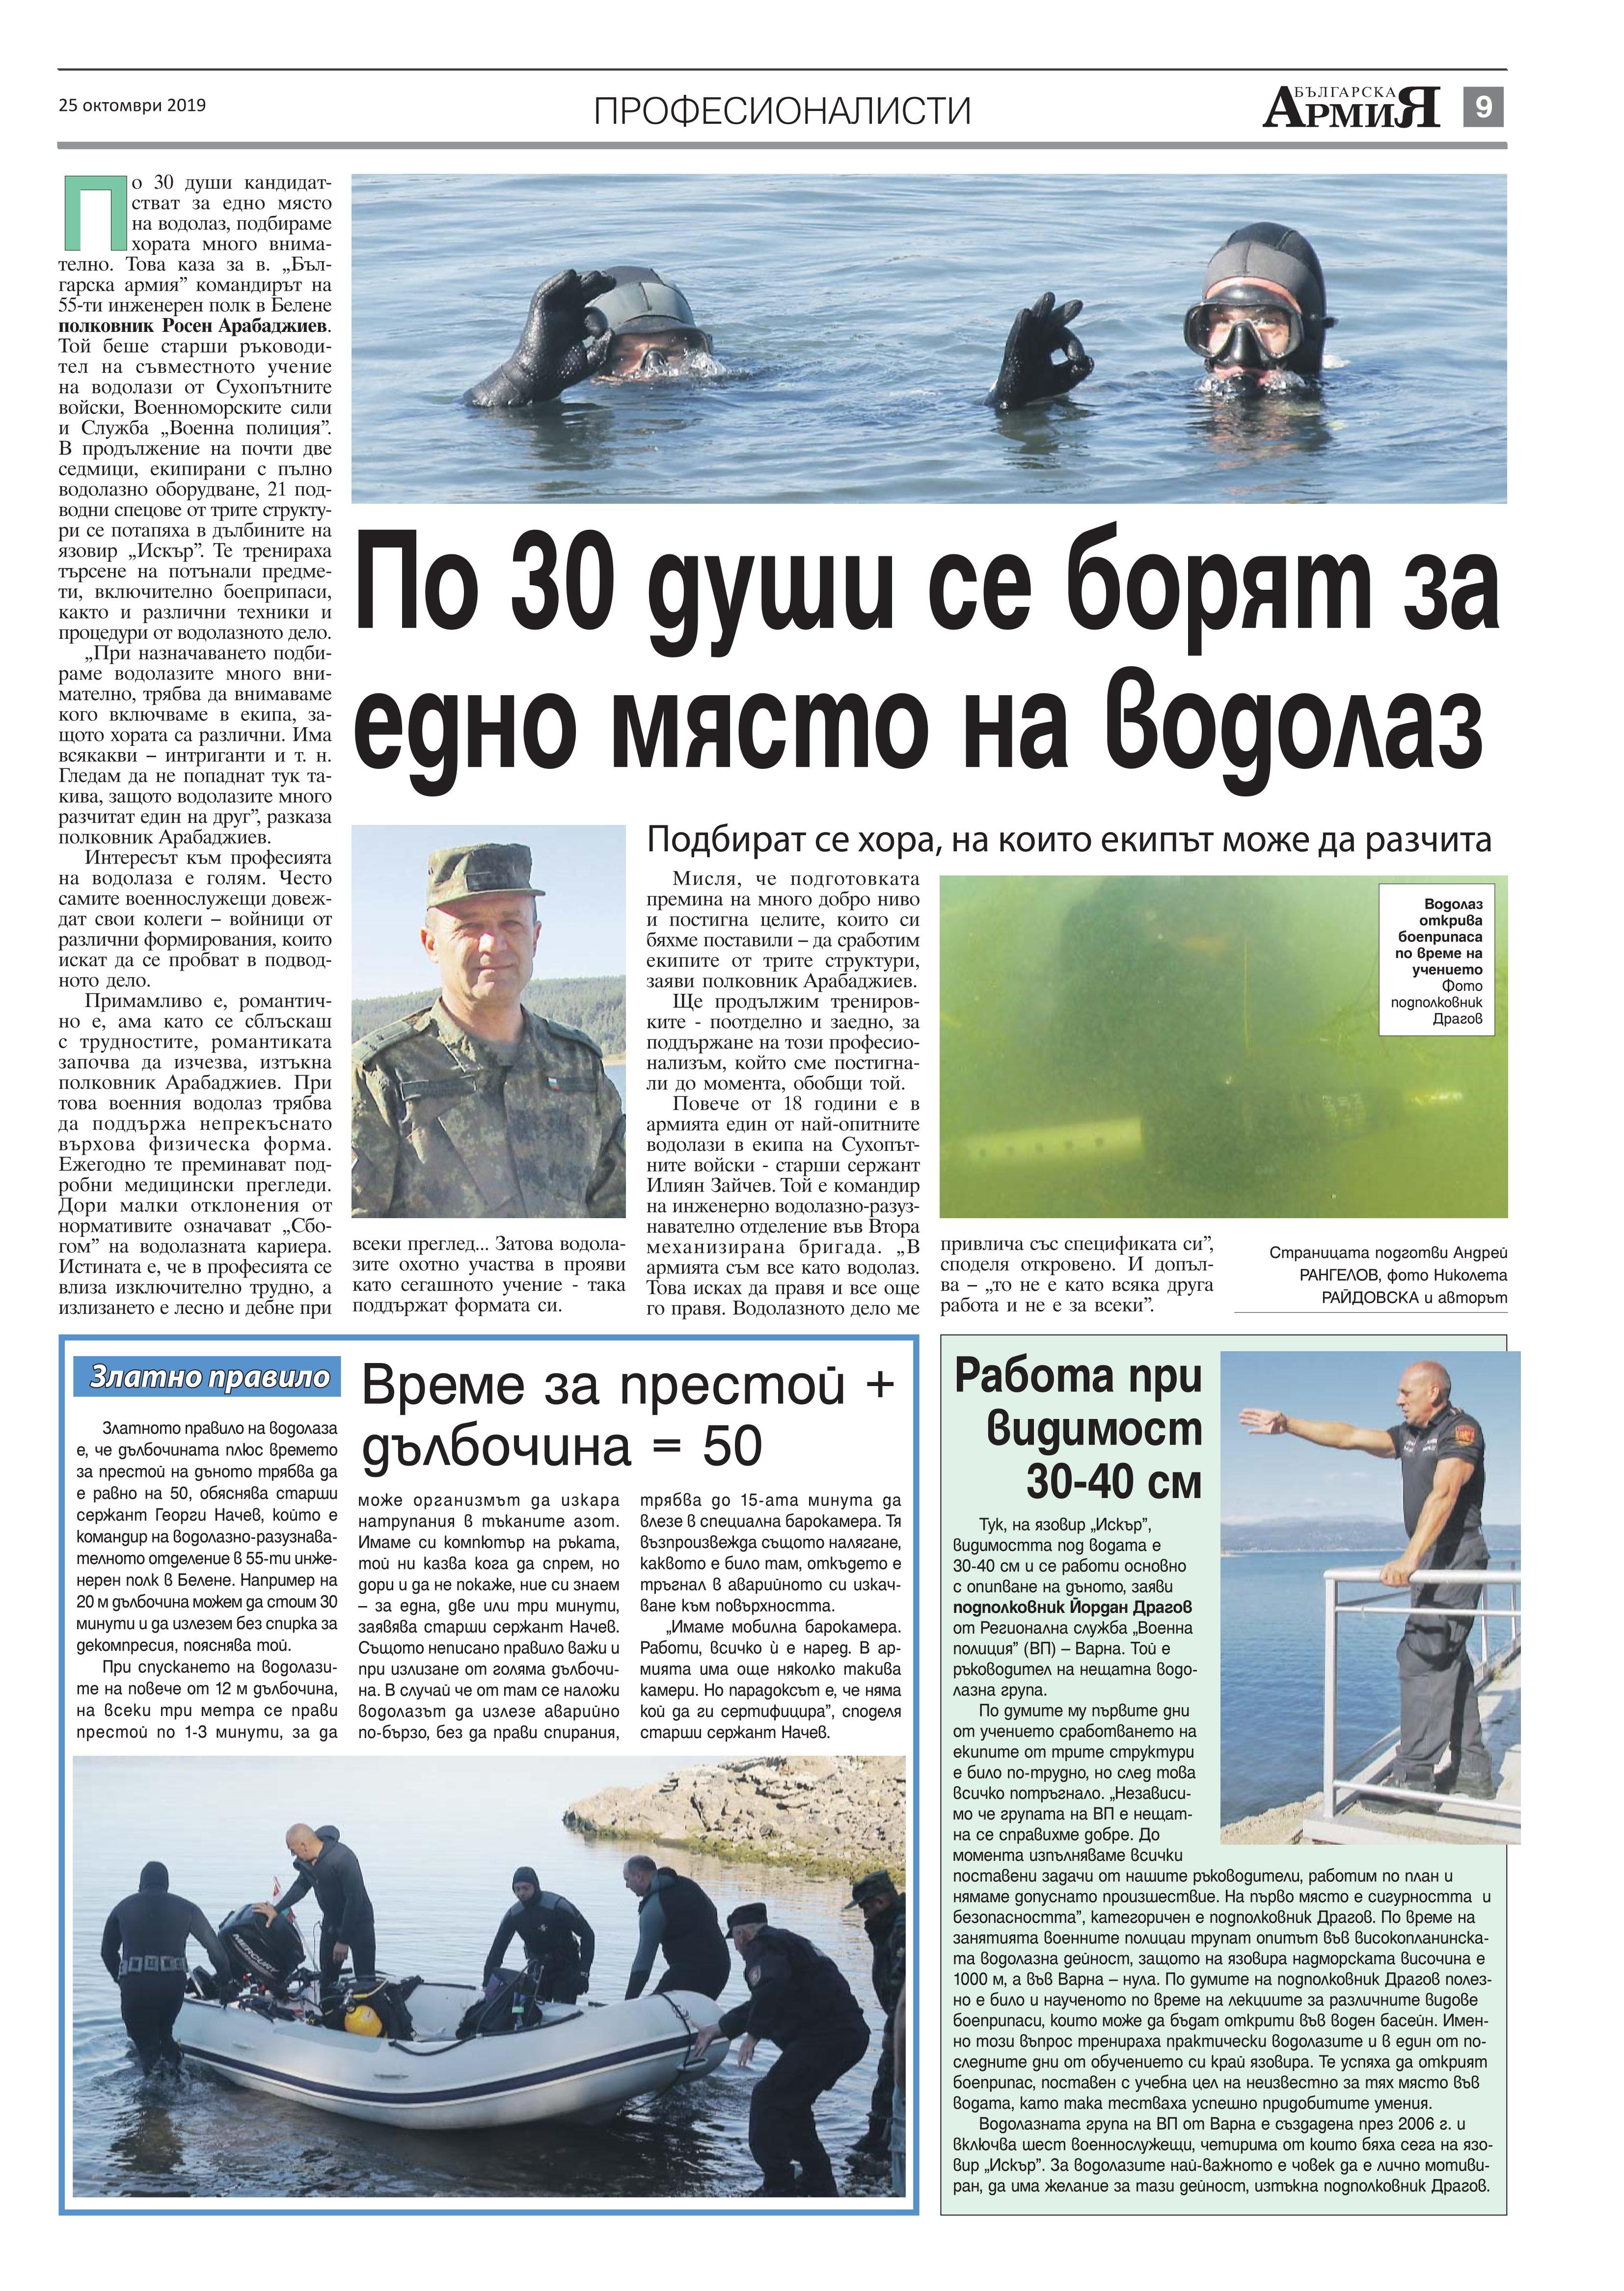 https://armymedia.bg/wp-content/uploads/2015/06/09.page1_-111.jpg